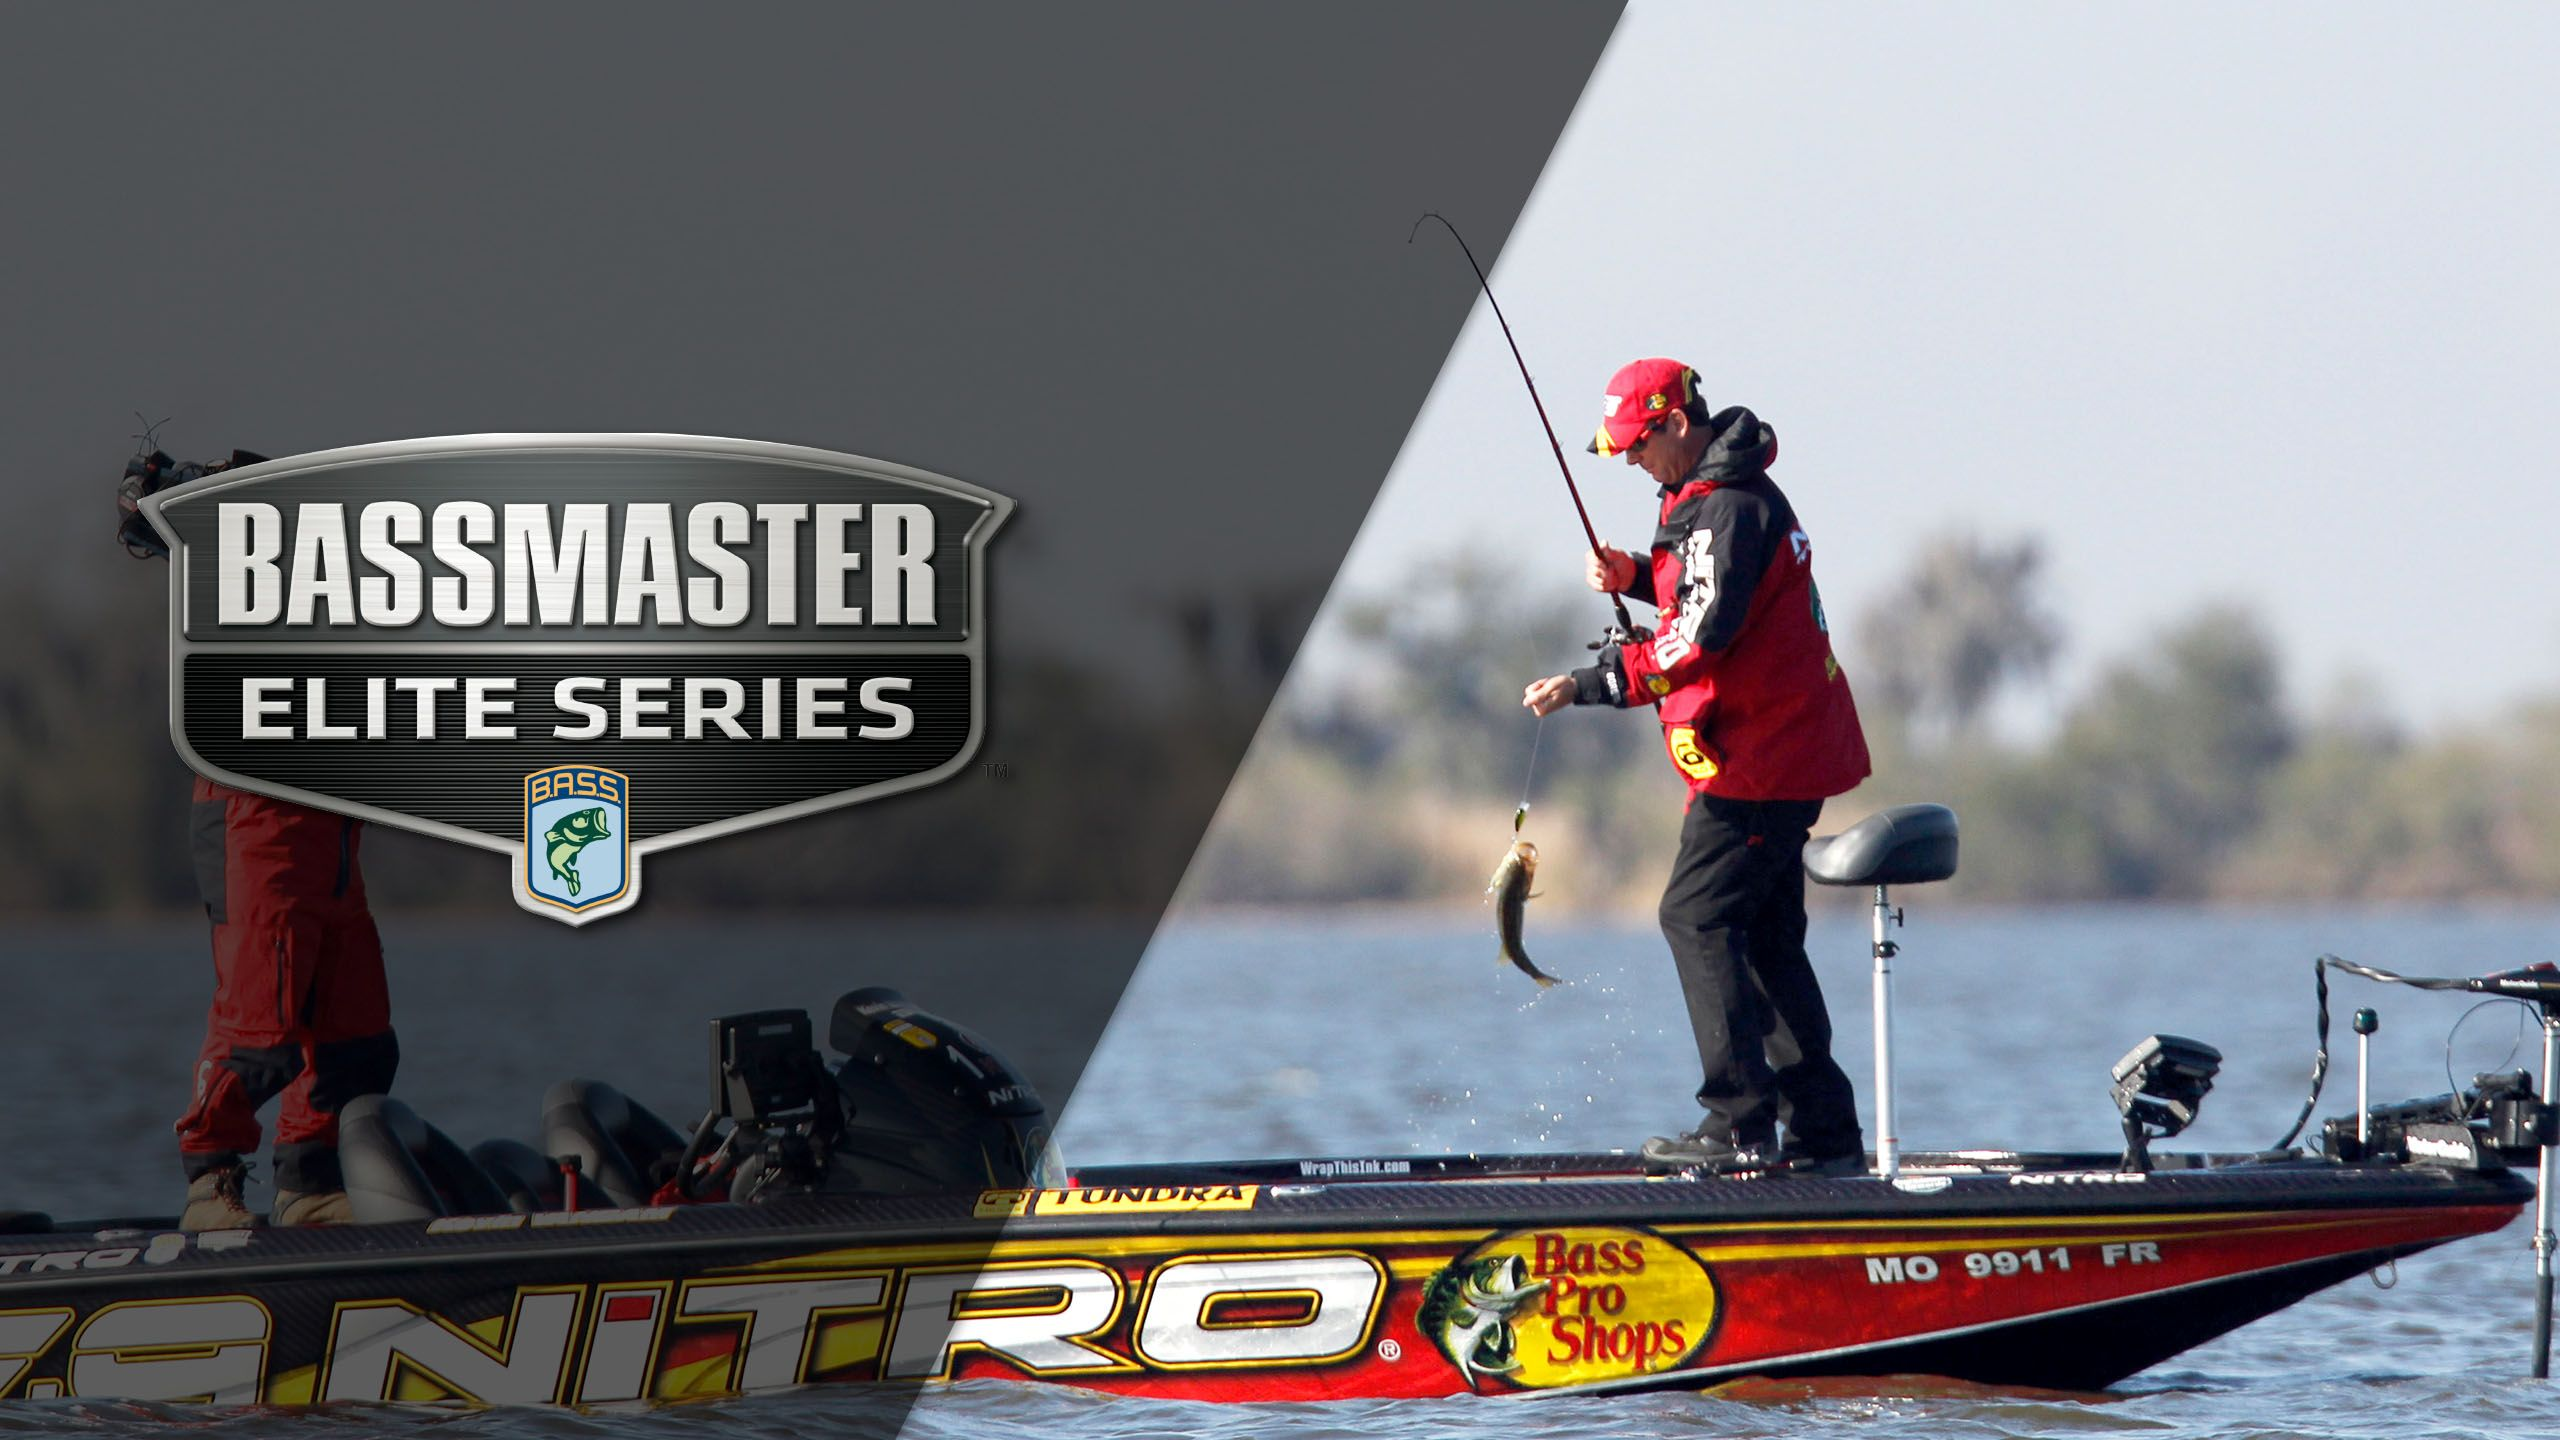 Bassmaster Elite Series at Sabine River